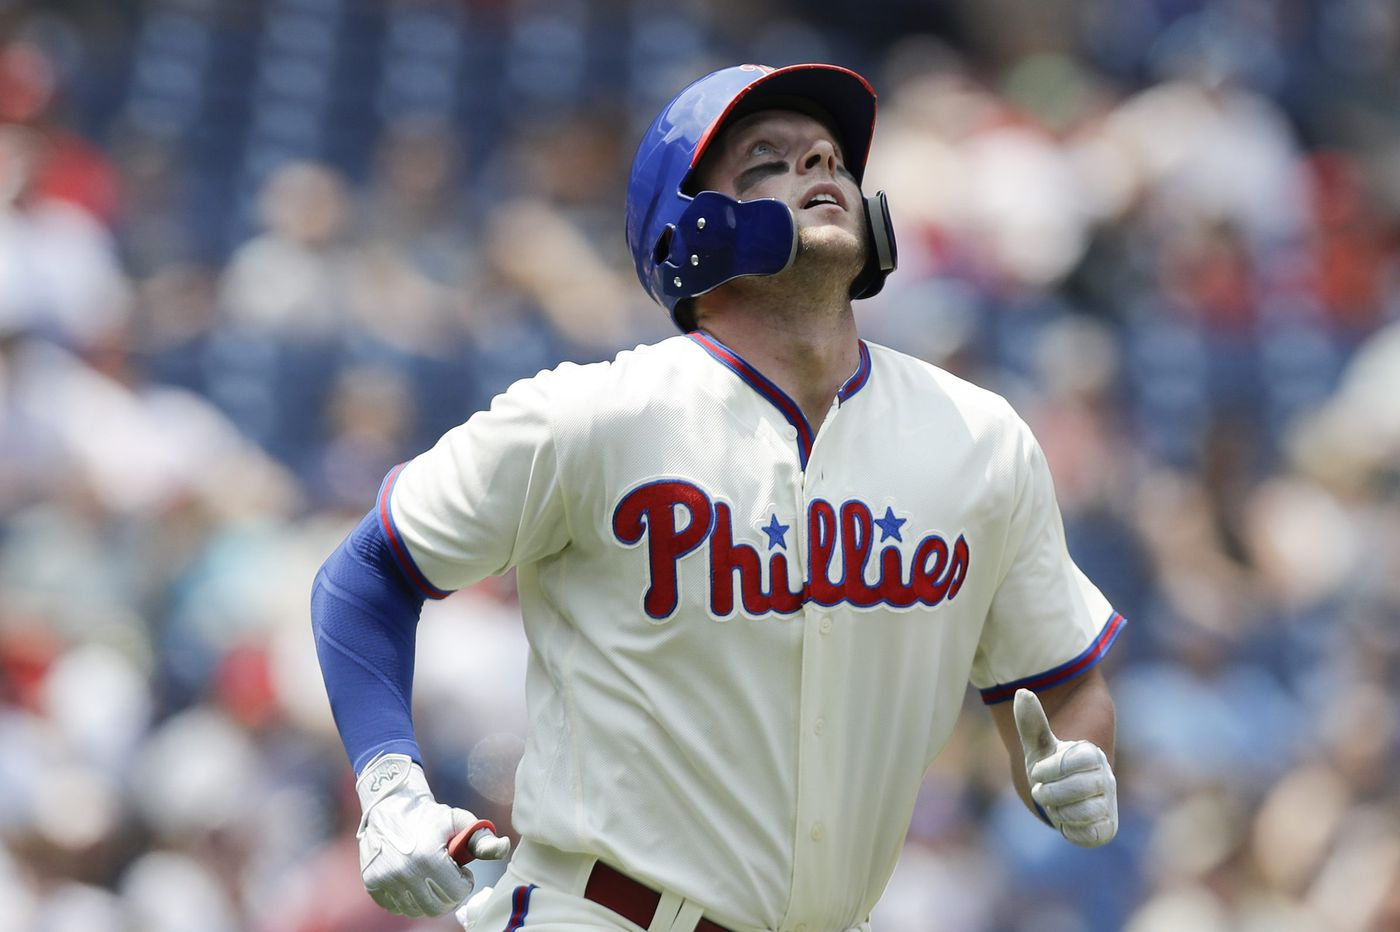 Rhys Hoskins could become one of the faces of baseball | Extra Innings